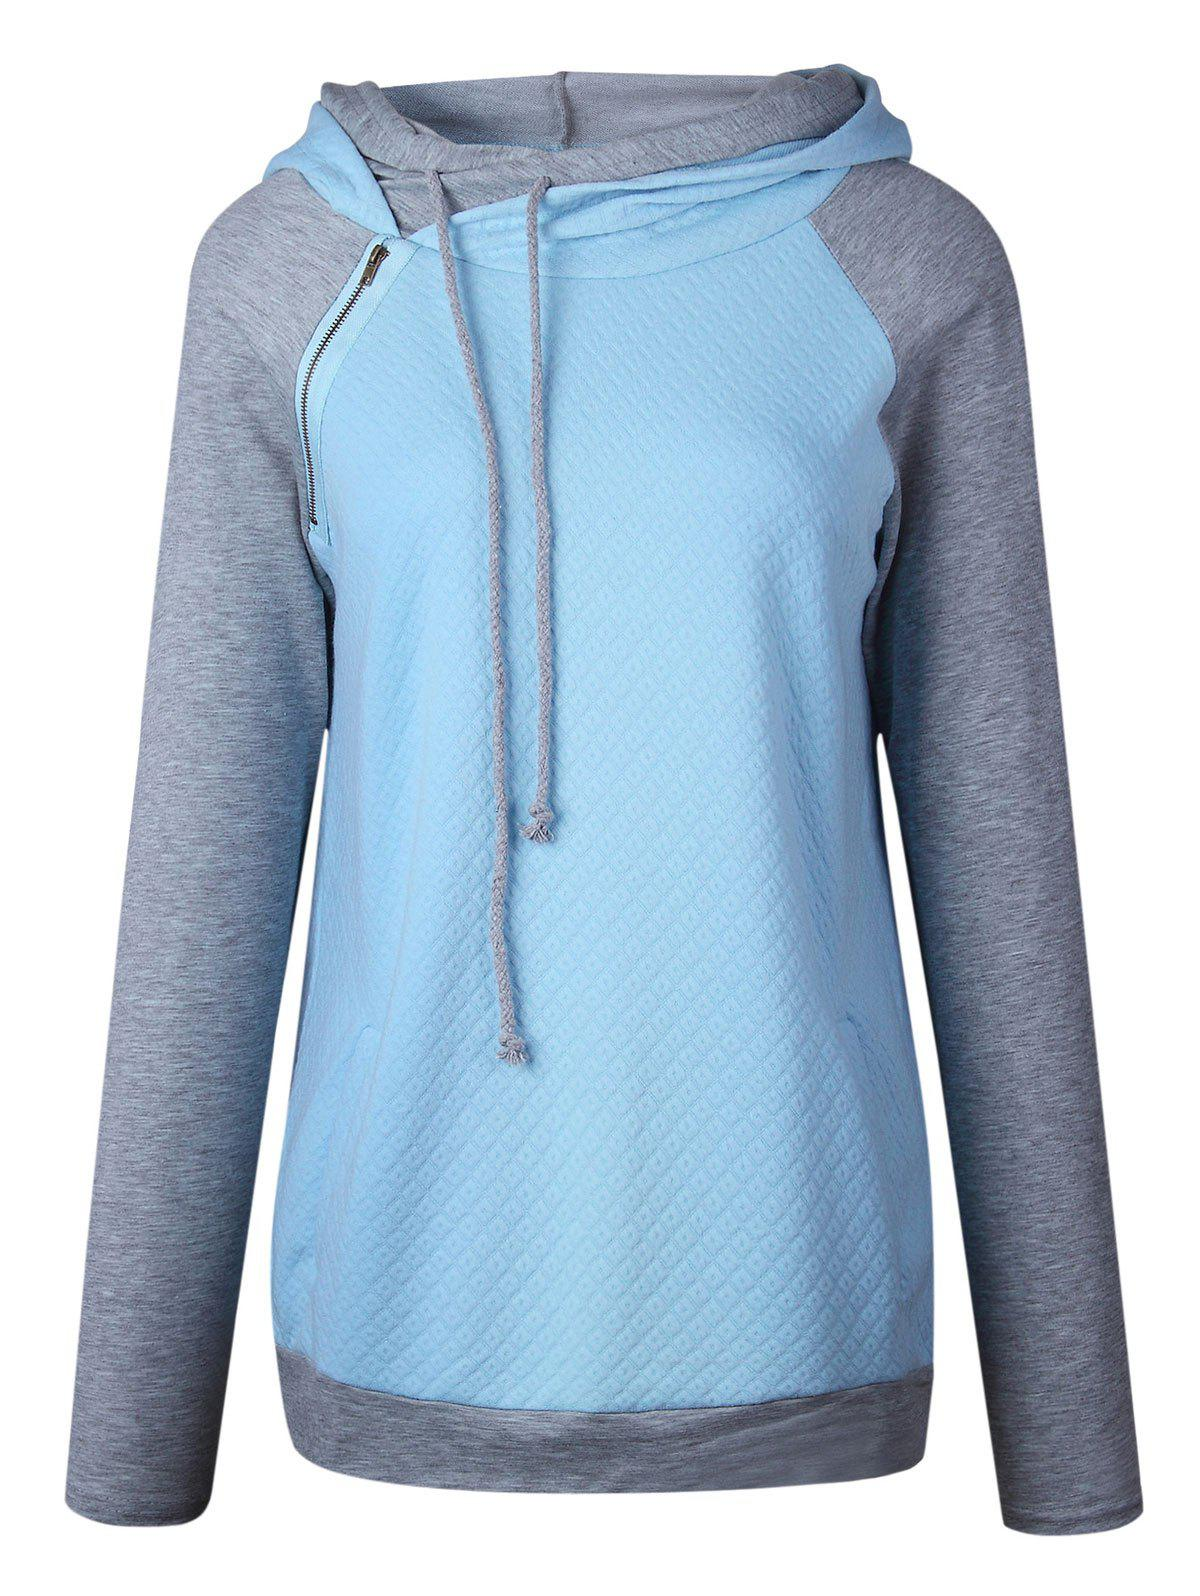 Trendy Zippered Embellished Raglan Sleeve Mock Neck Hoodie